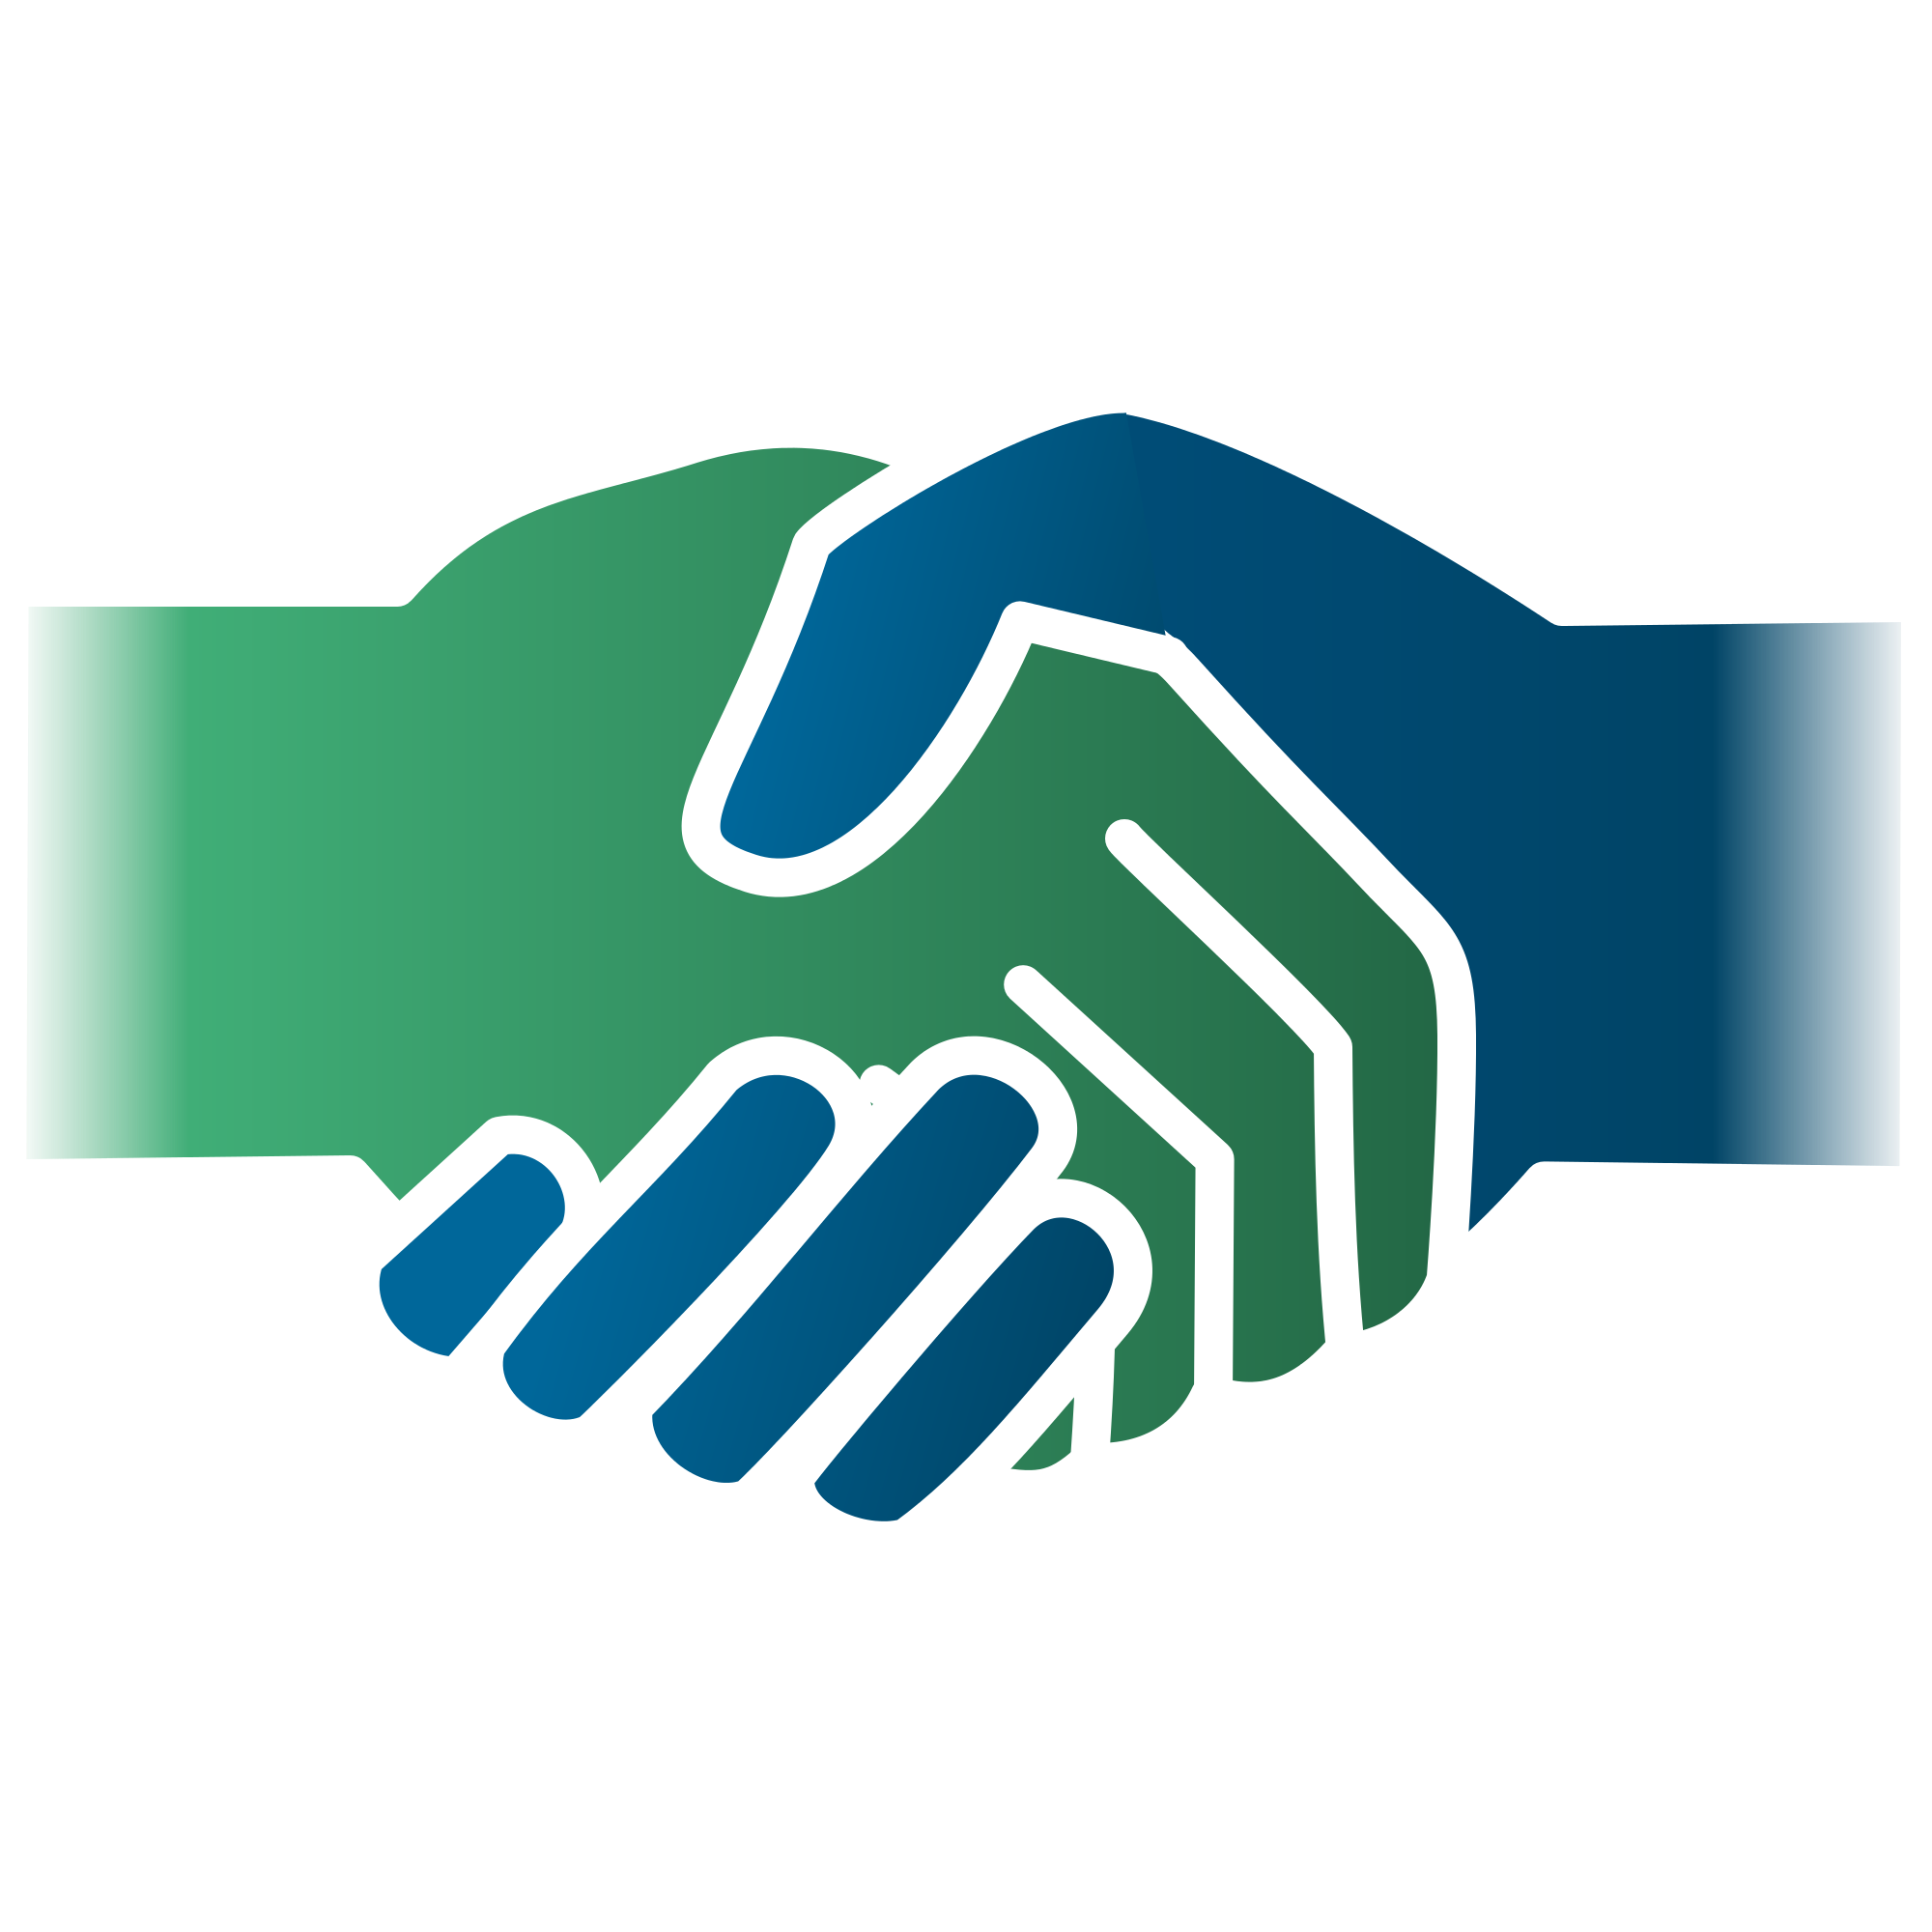 Handshake logo png. File icon green blue